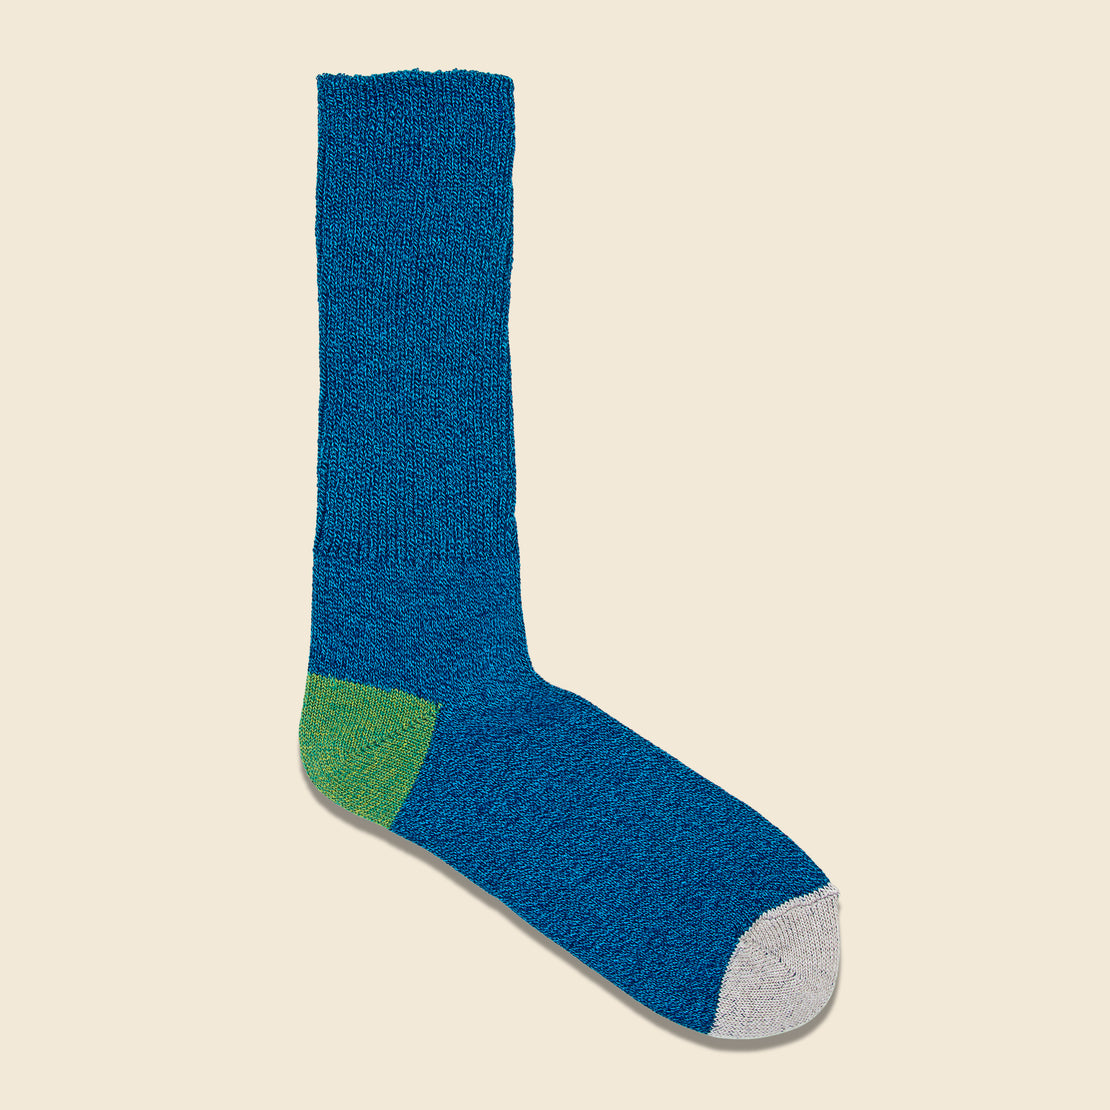 Anonymous Ism 2-Point Heel/Toe Crew Sock - Blue/Green/White